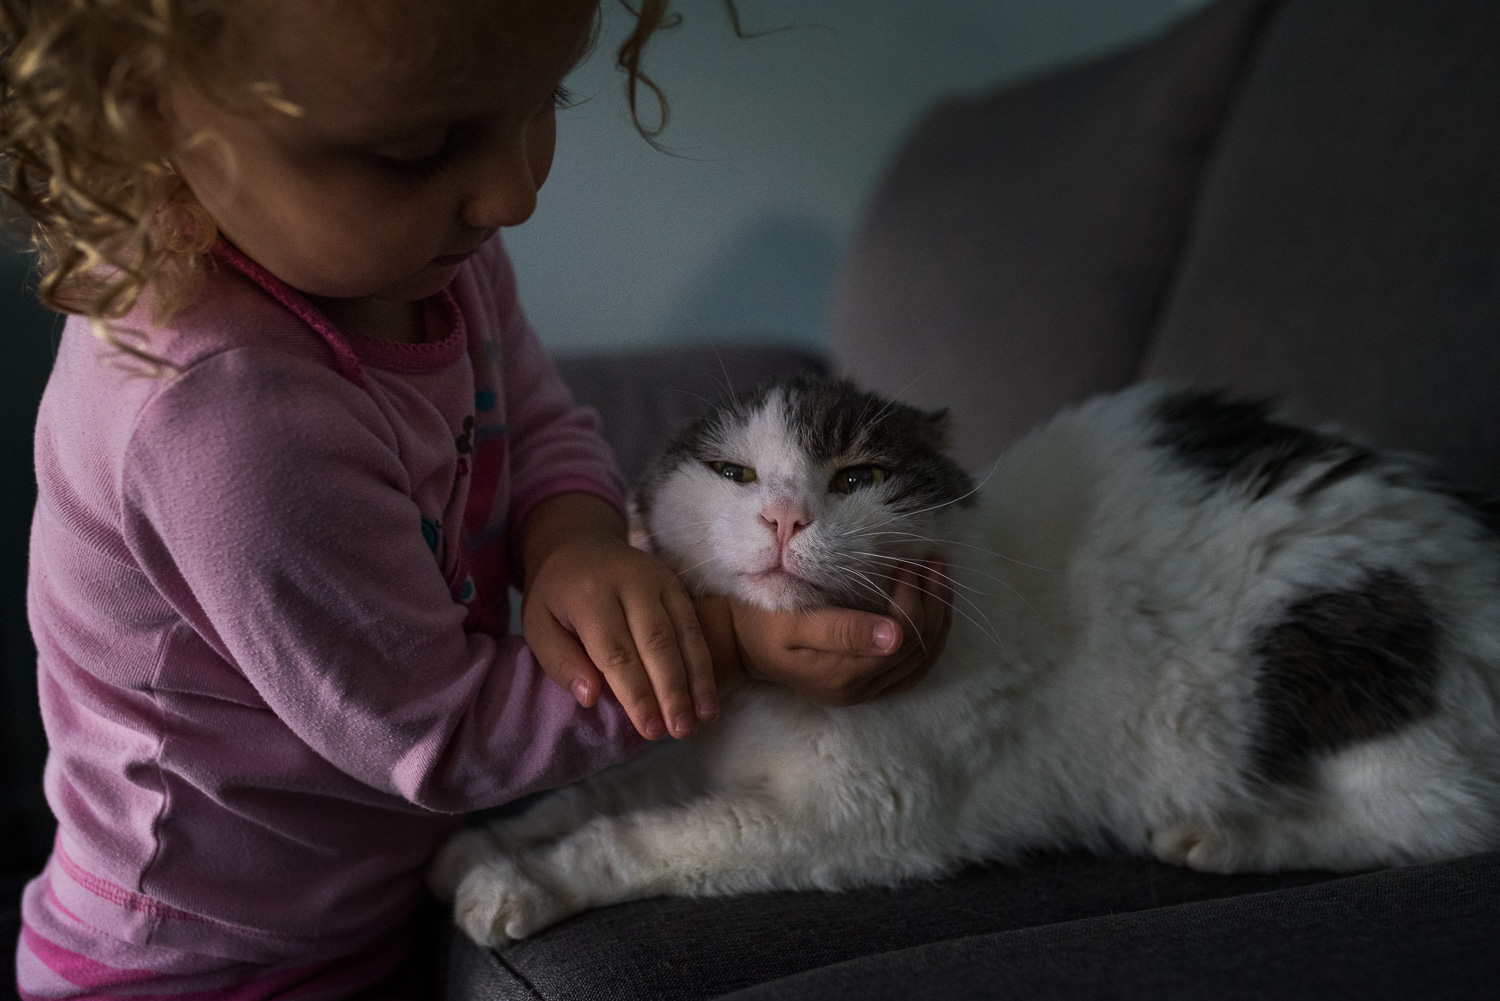 A toddler girl with blond curly hair in pink pyjamas with her right hand cupping the head of a white and grey scottish fold cat who is laying on a grey couch.